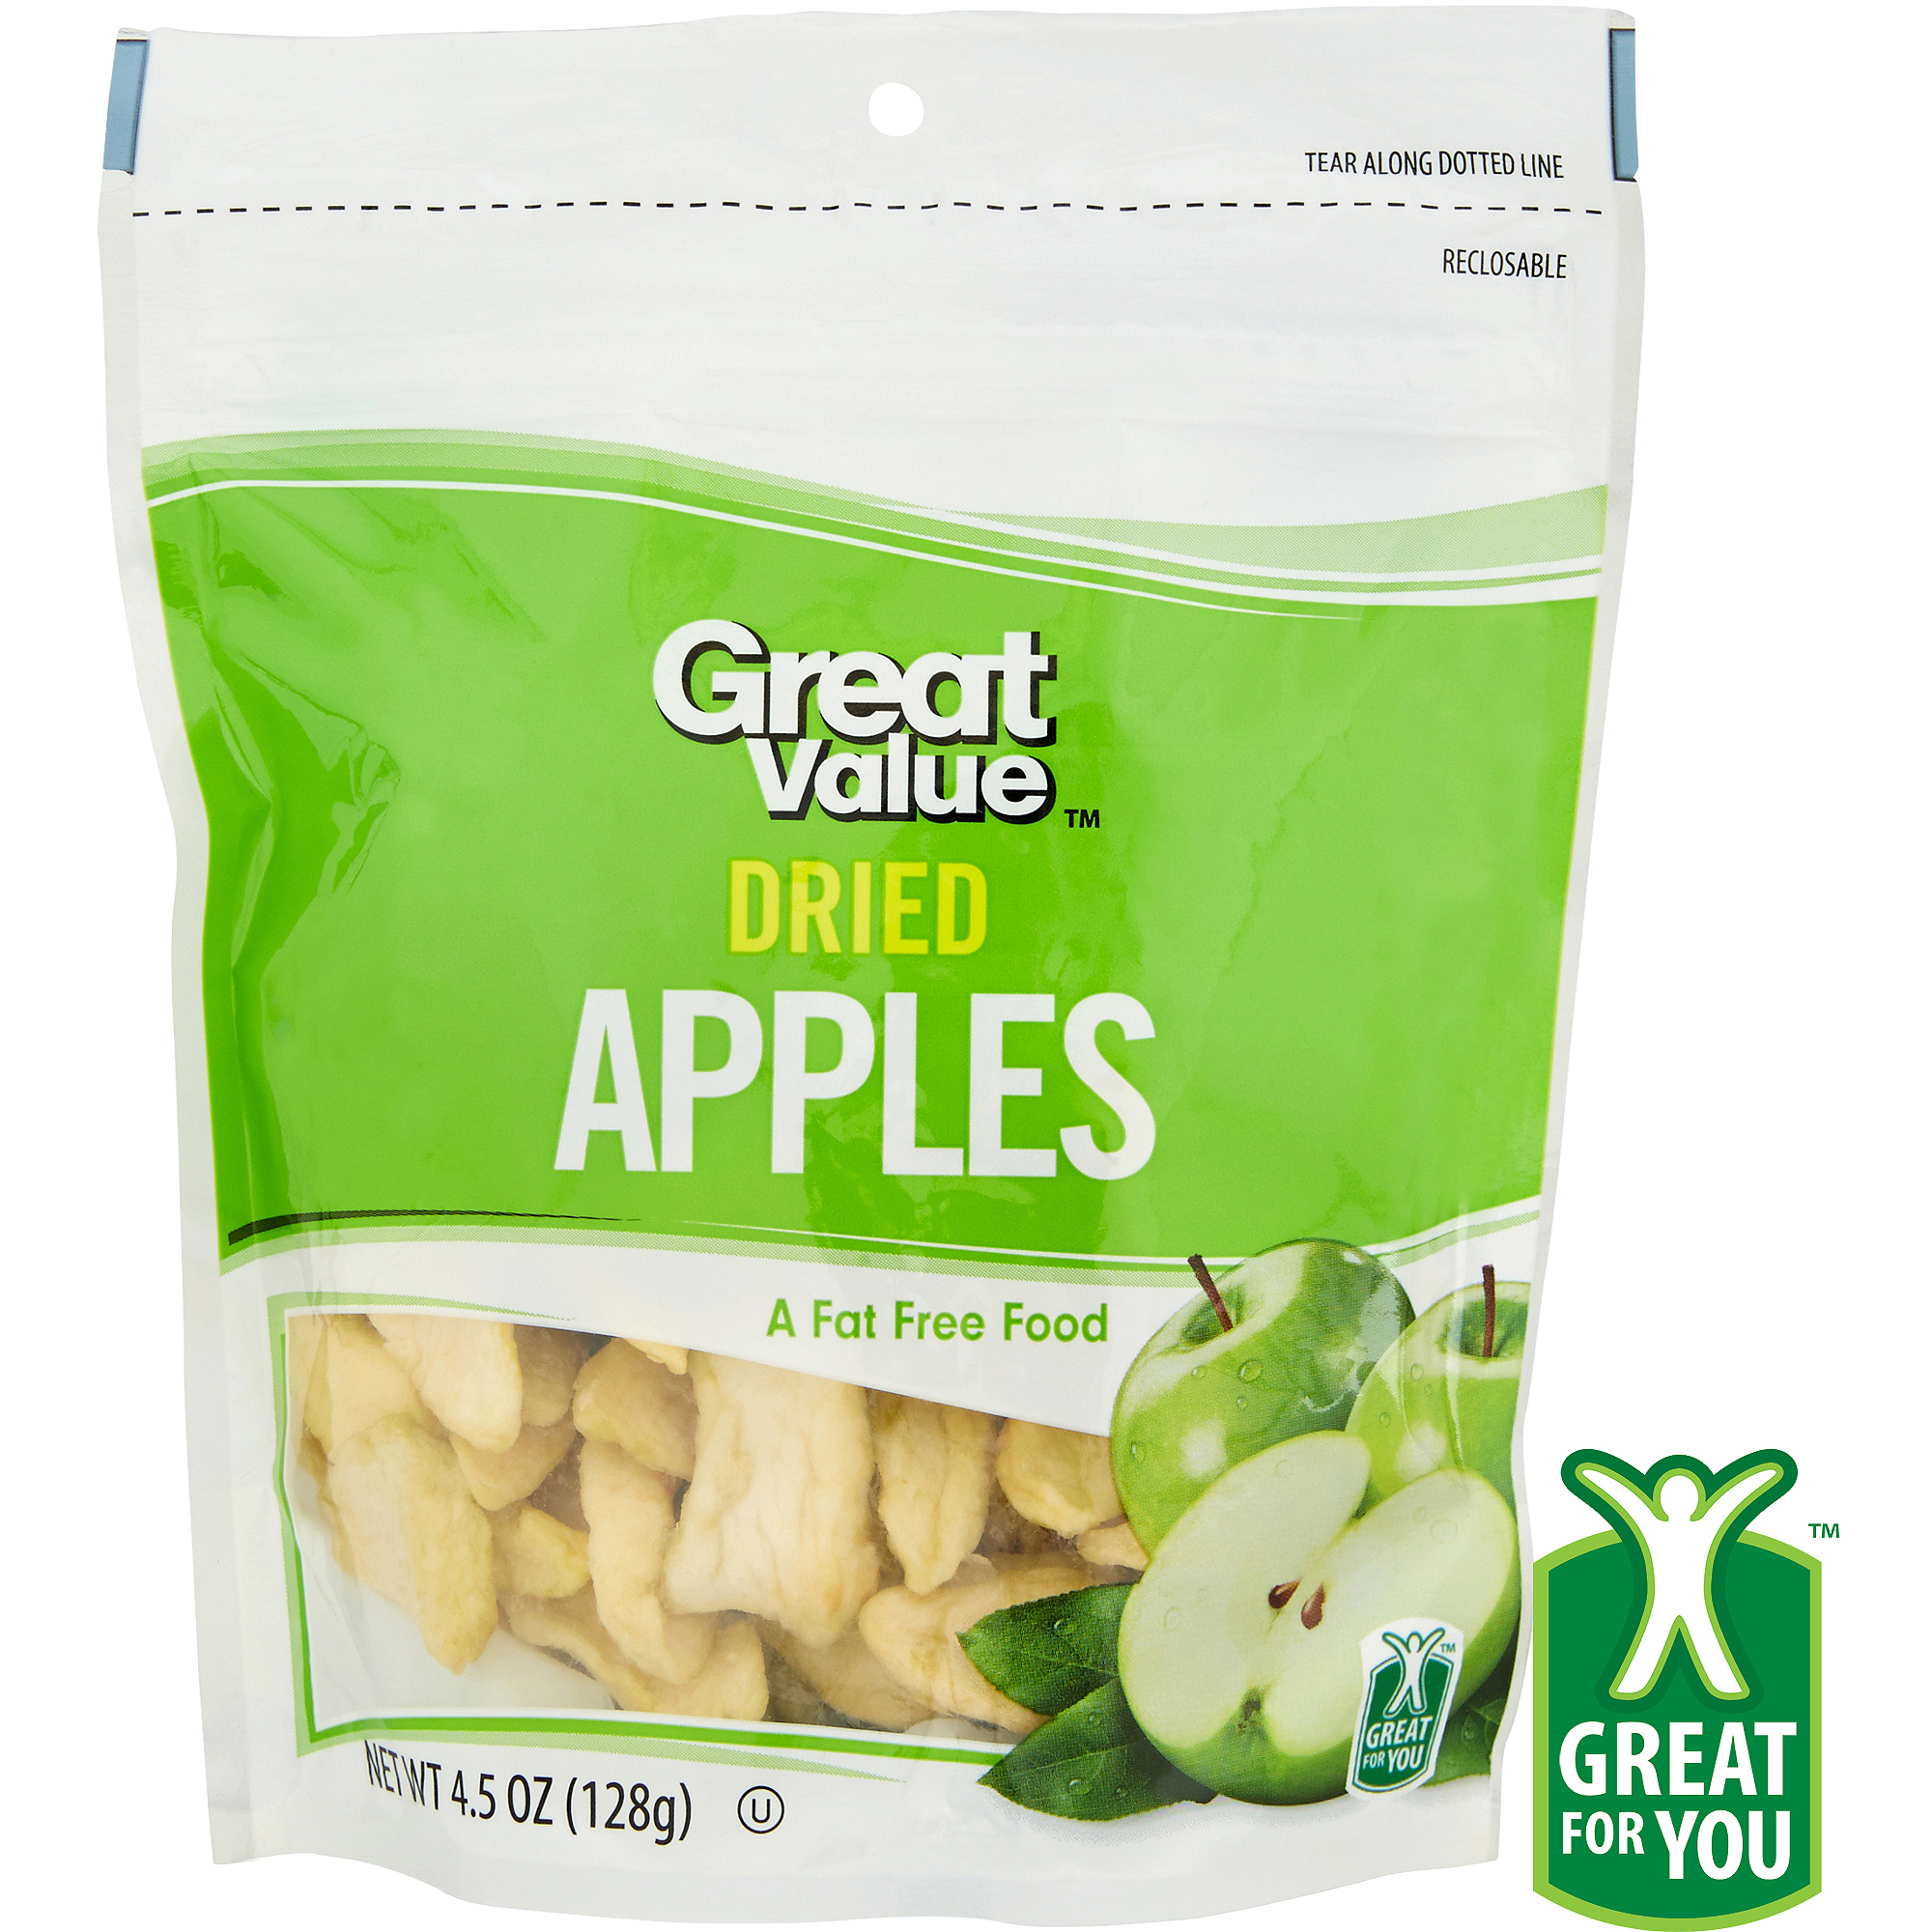 Great Value: Dried Apples, 4.5 Oz